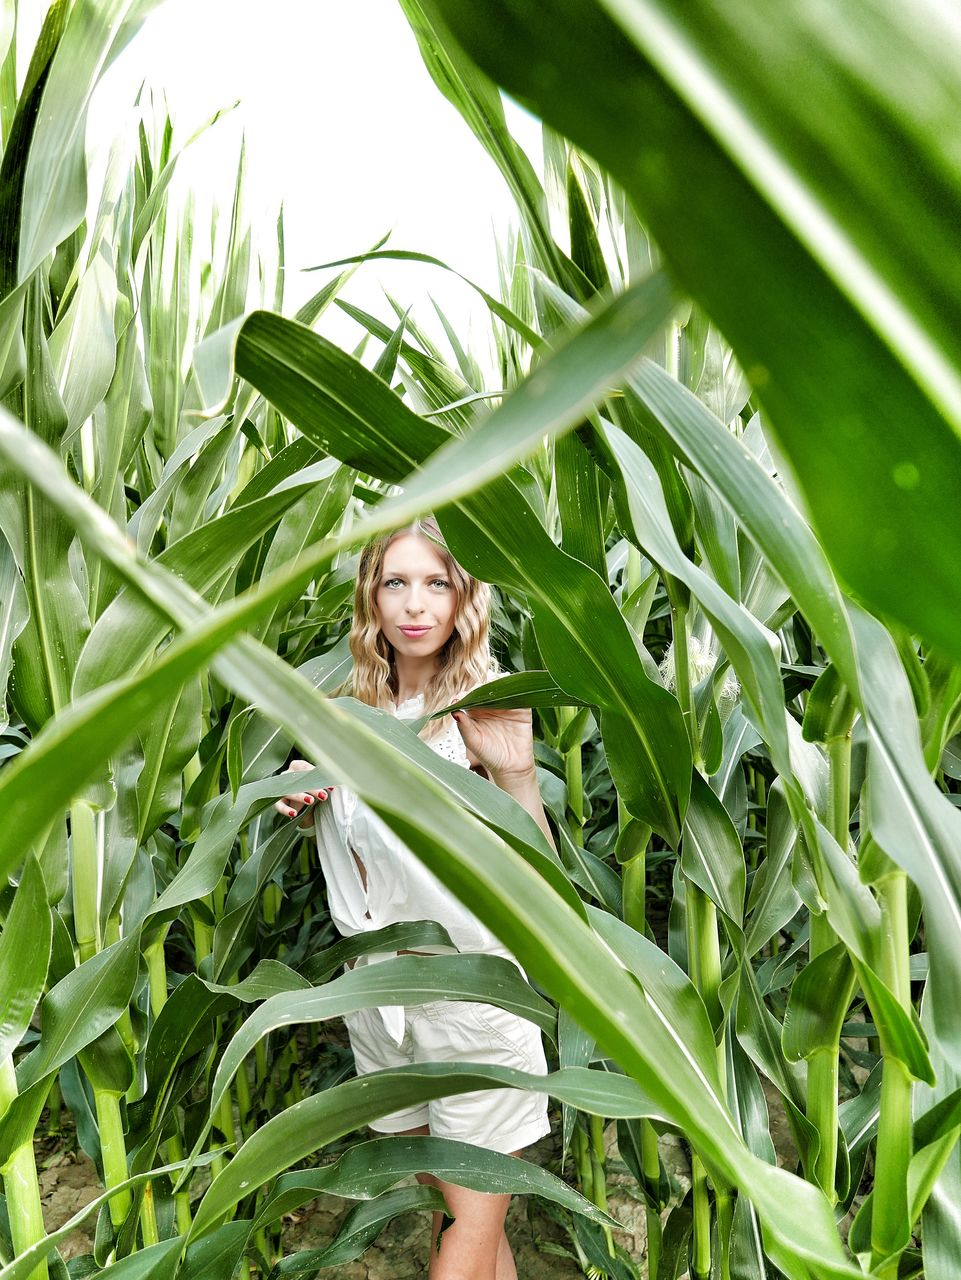 Portrait of young woman standing amidst plants